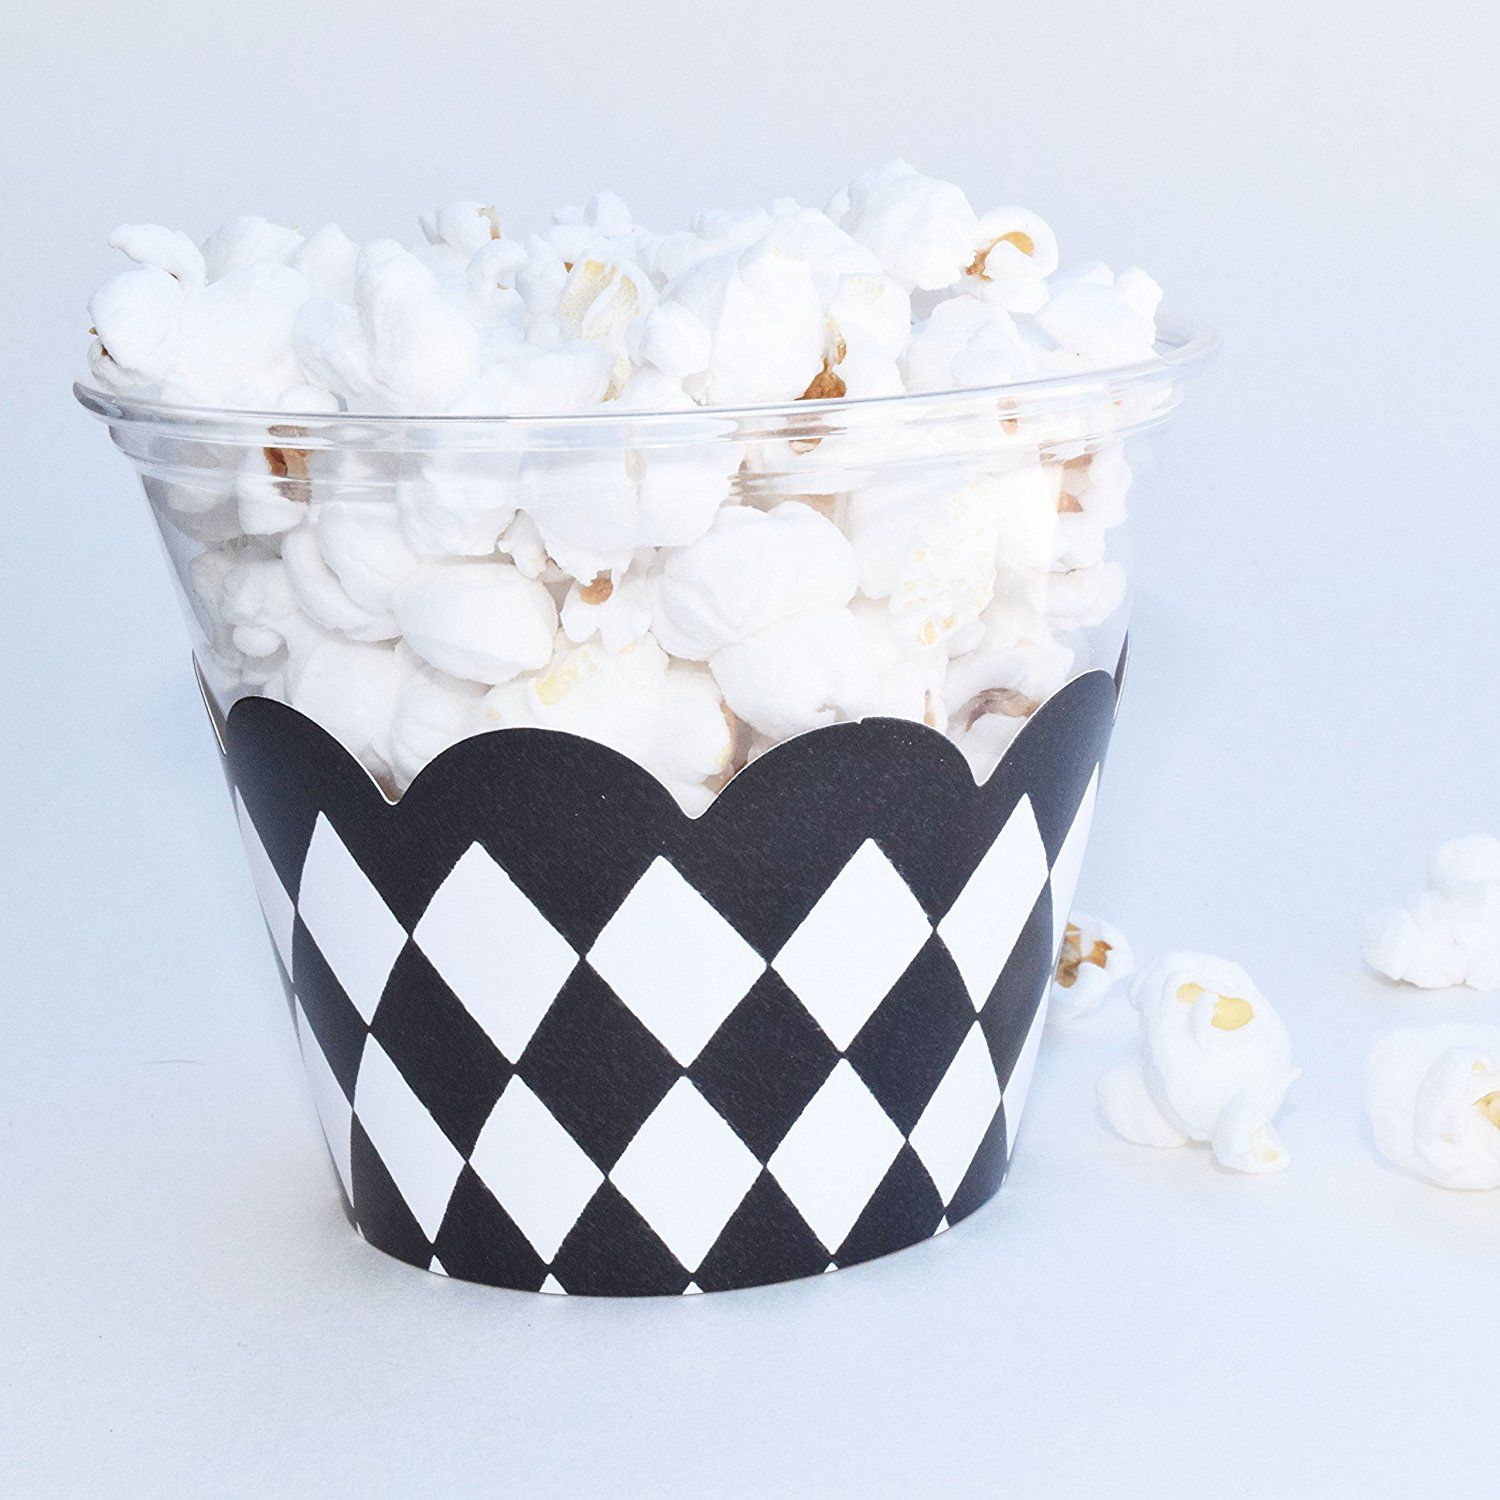 Amazon.com: 50s Theme Party Supplies, Black and White Checkerboard ...